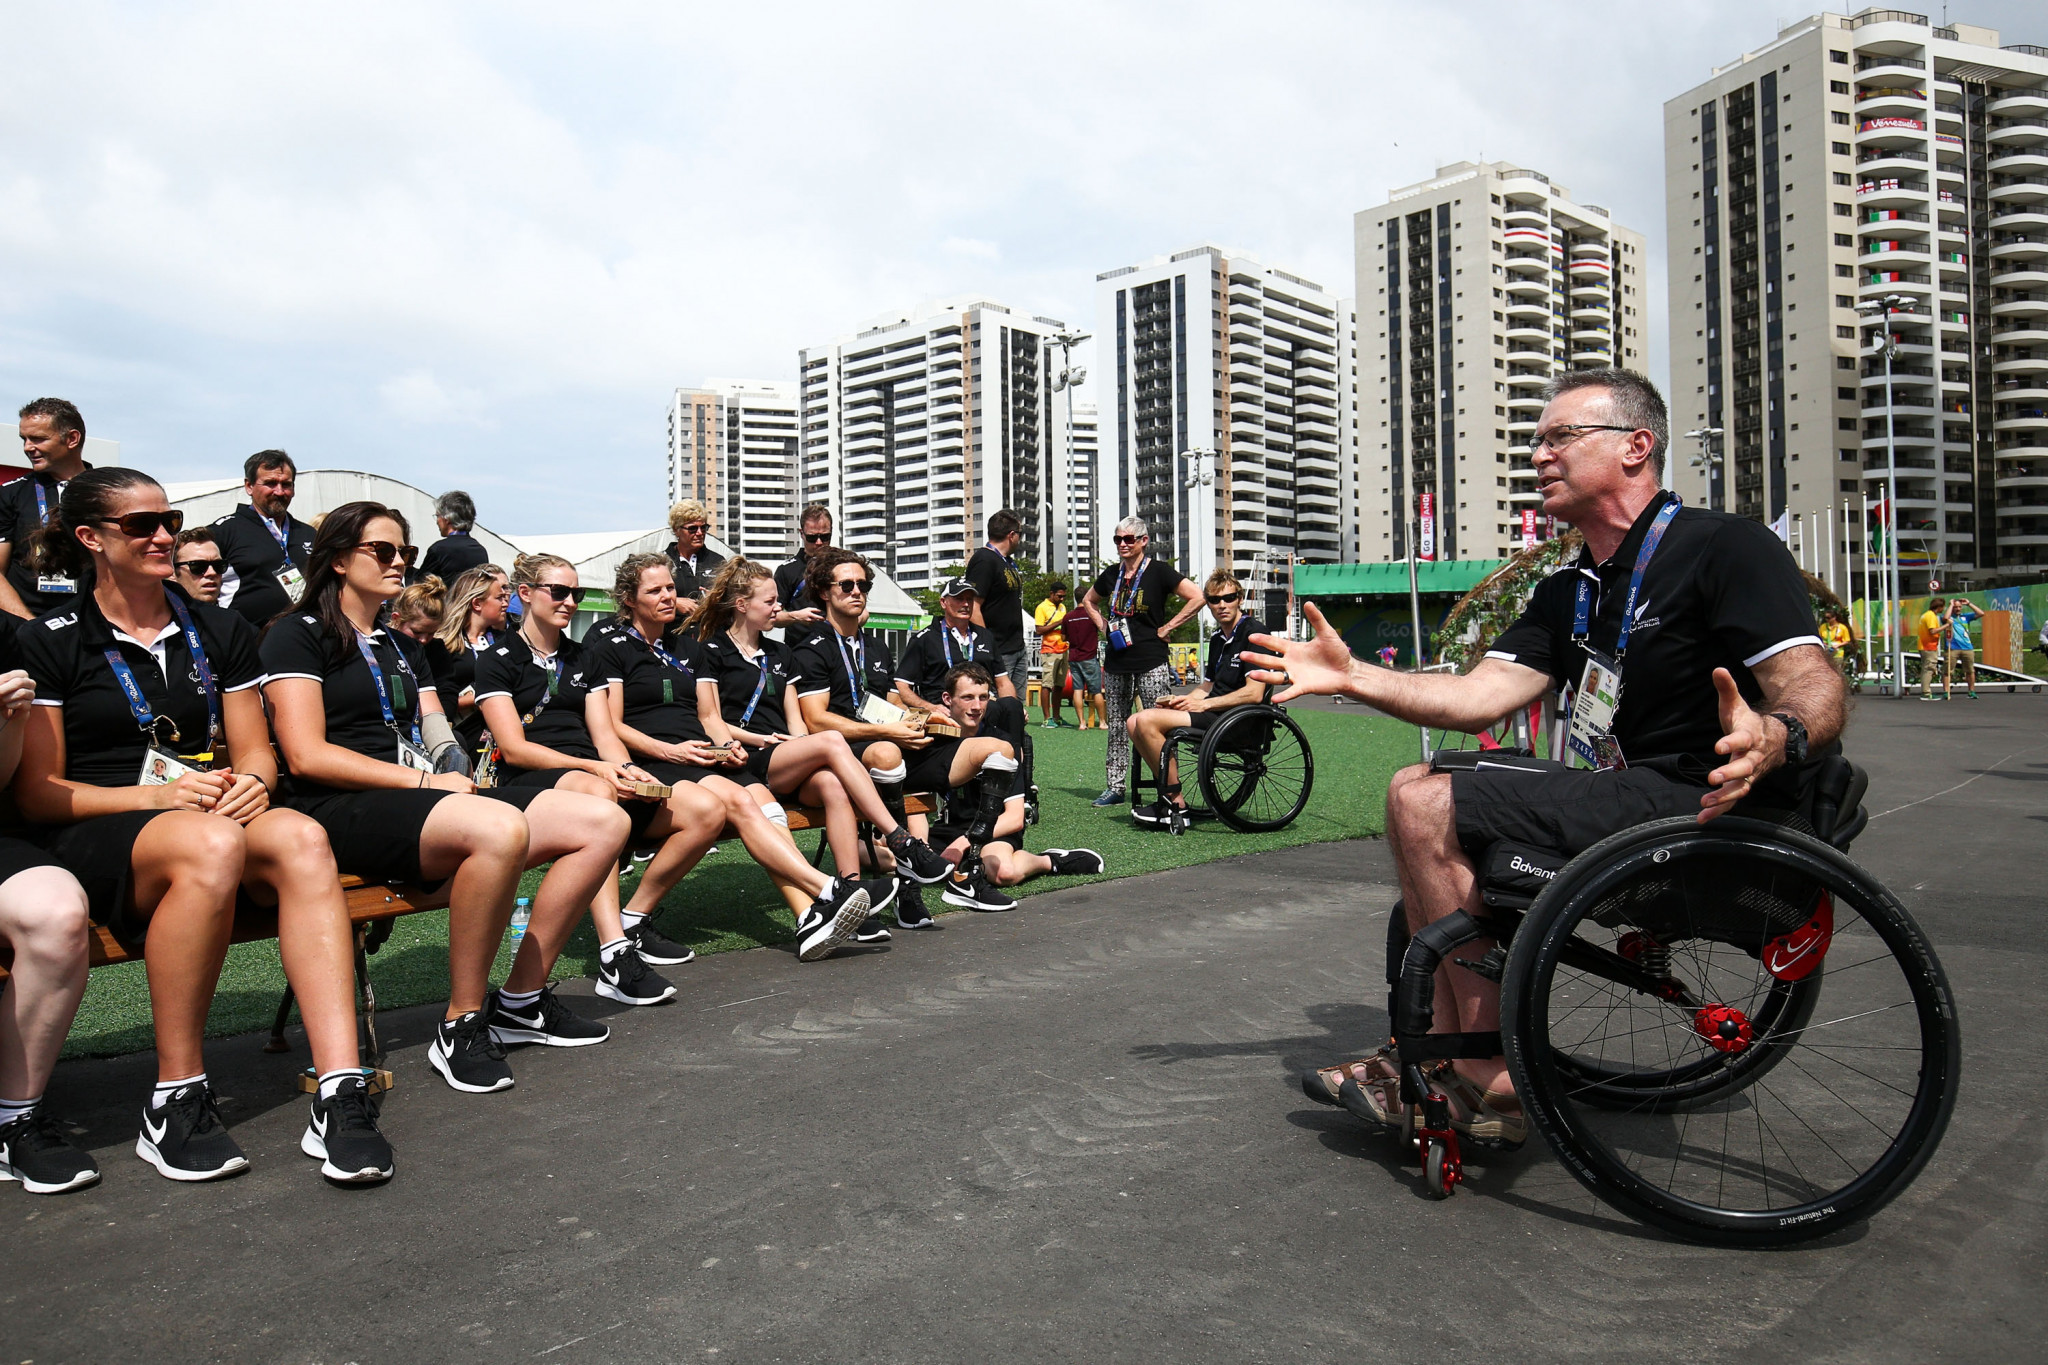 Ben Lucas was New Zealand's Chef de Mission at the 2016 Paralympic Games in Rio de Janeiro ©Getty Images